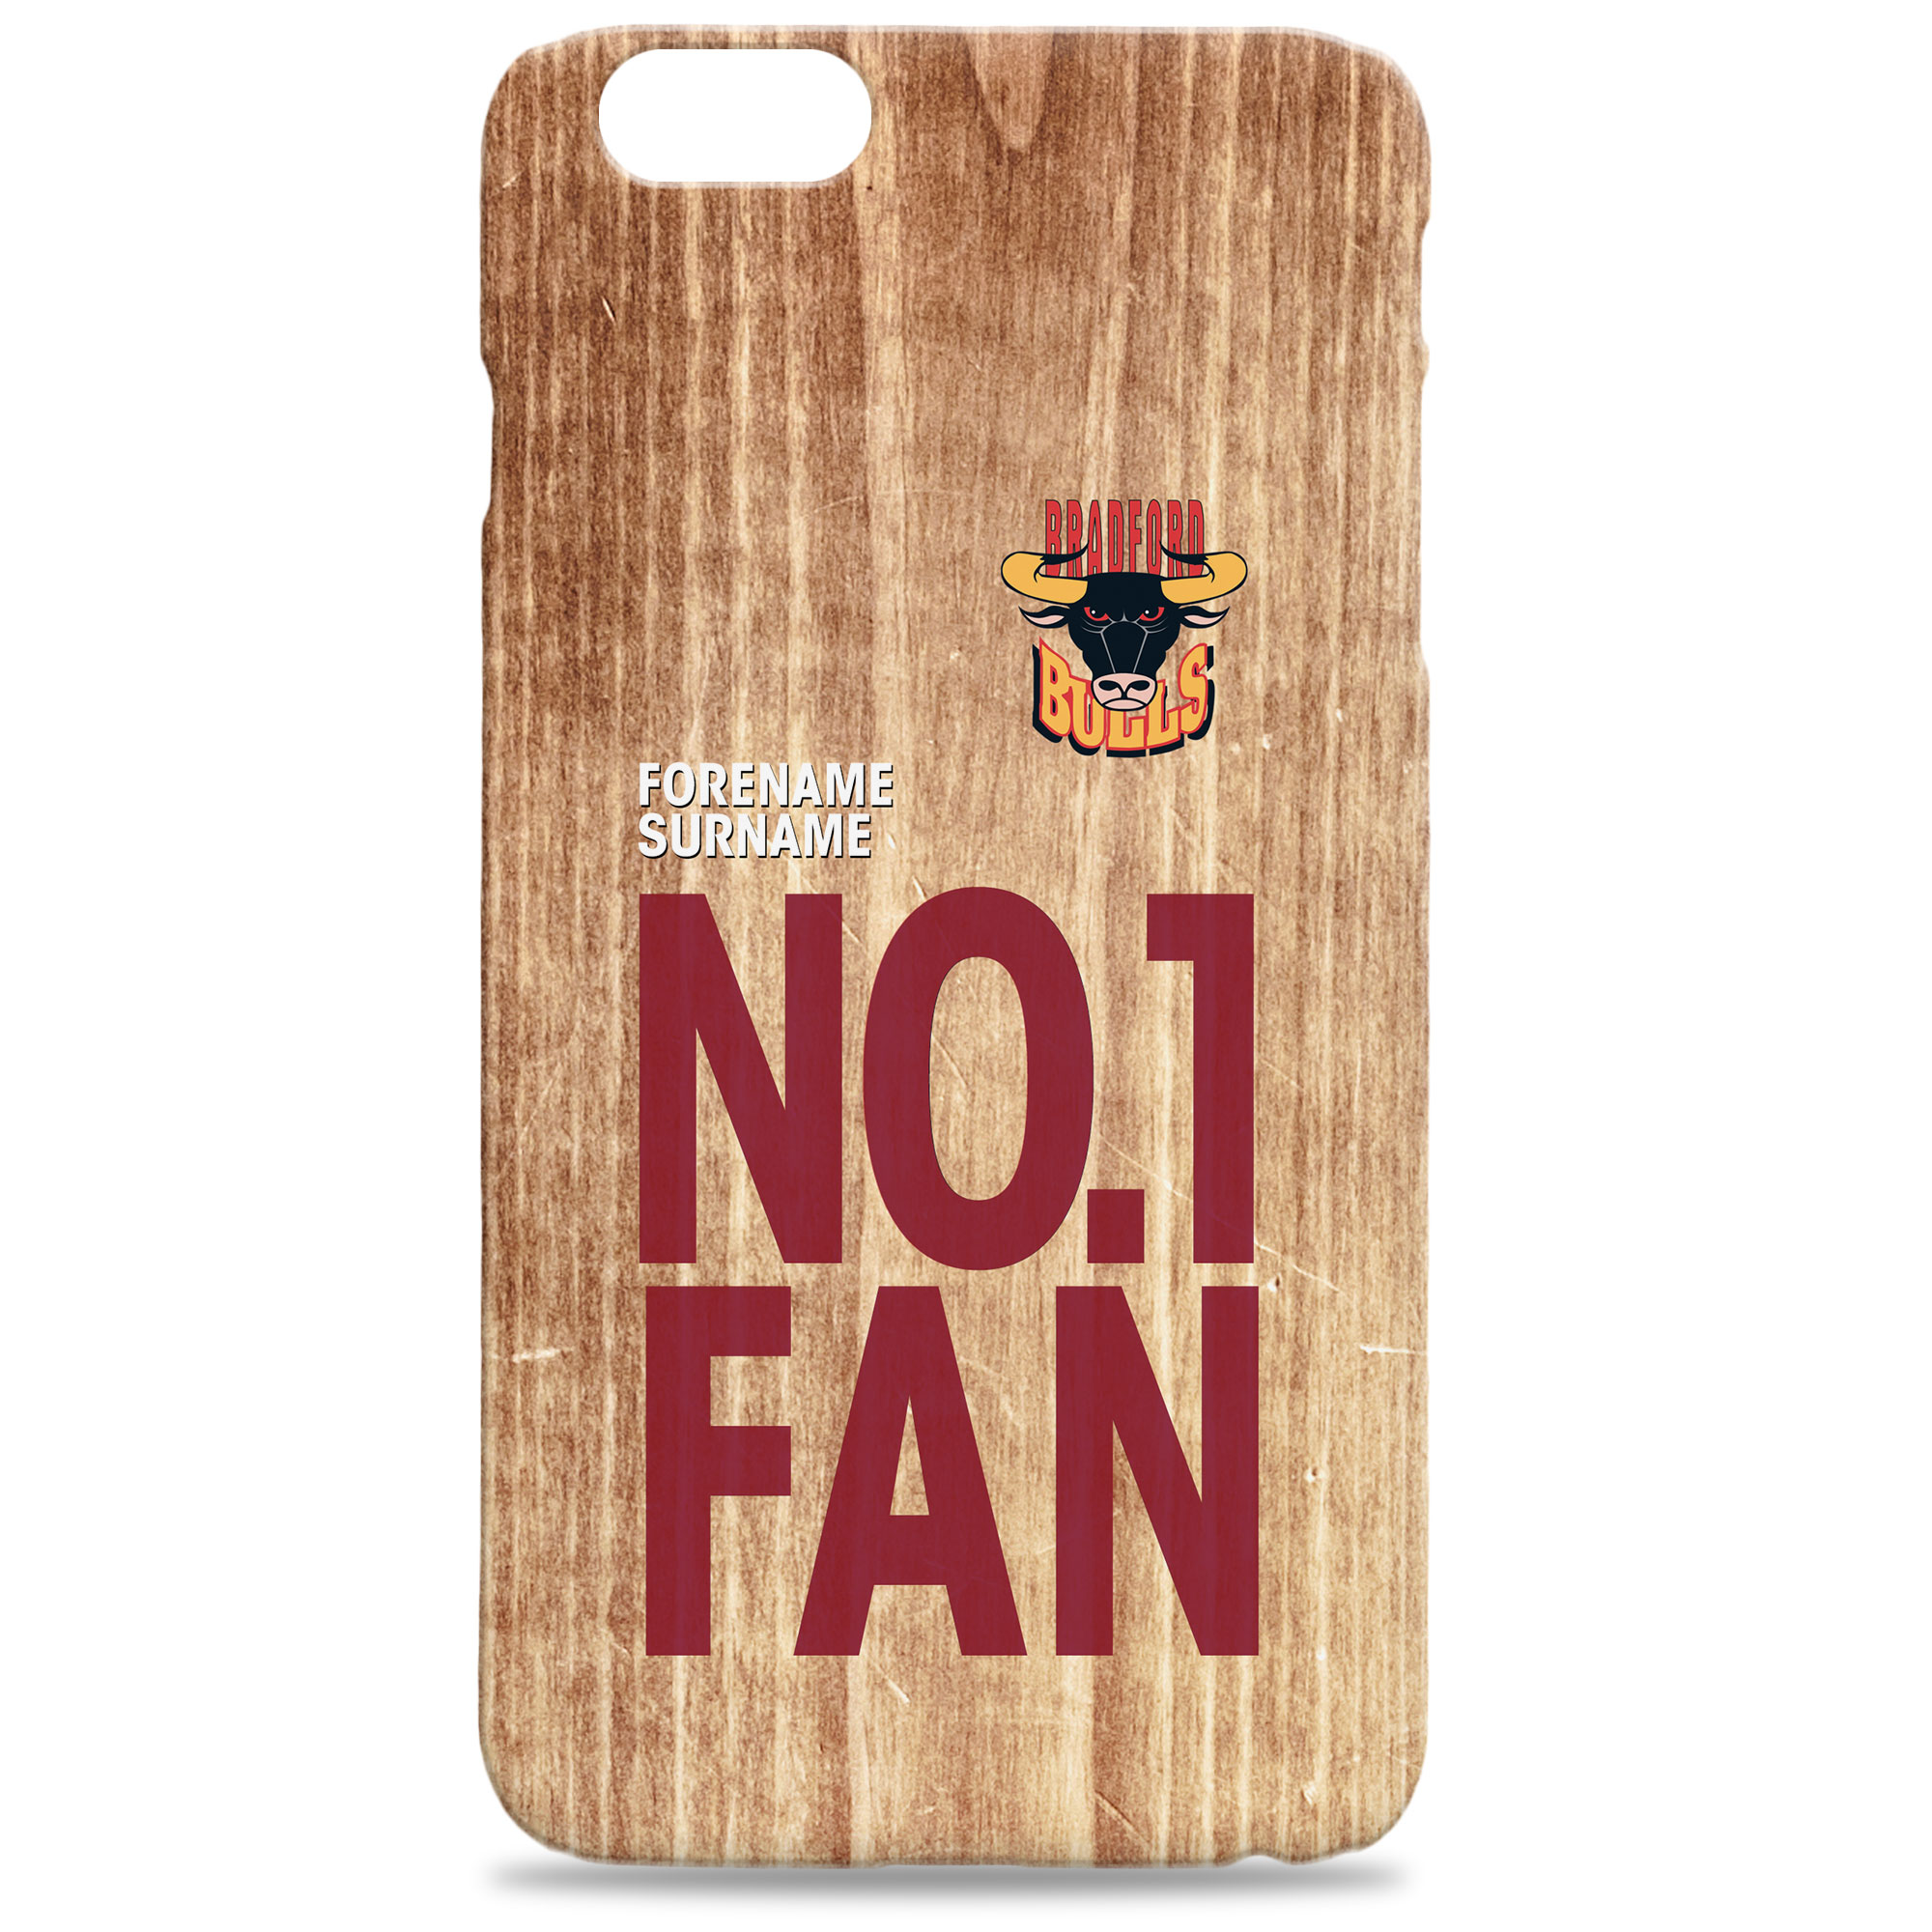 Bradford Bulls No 1 Fan Hard Back Phone Case